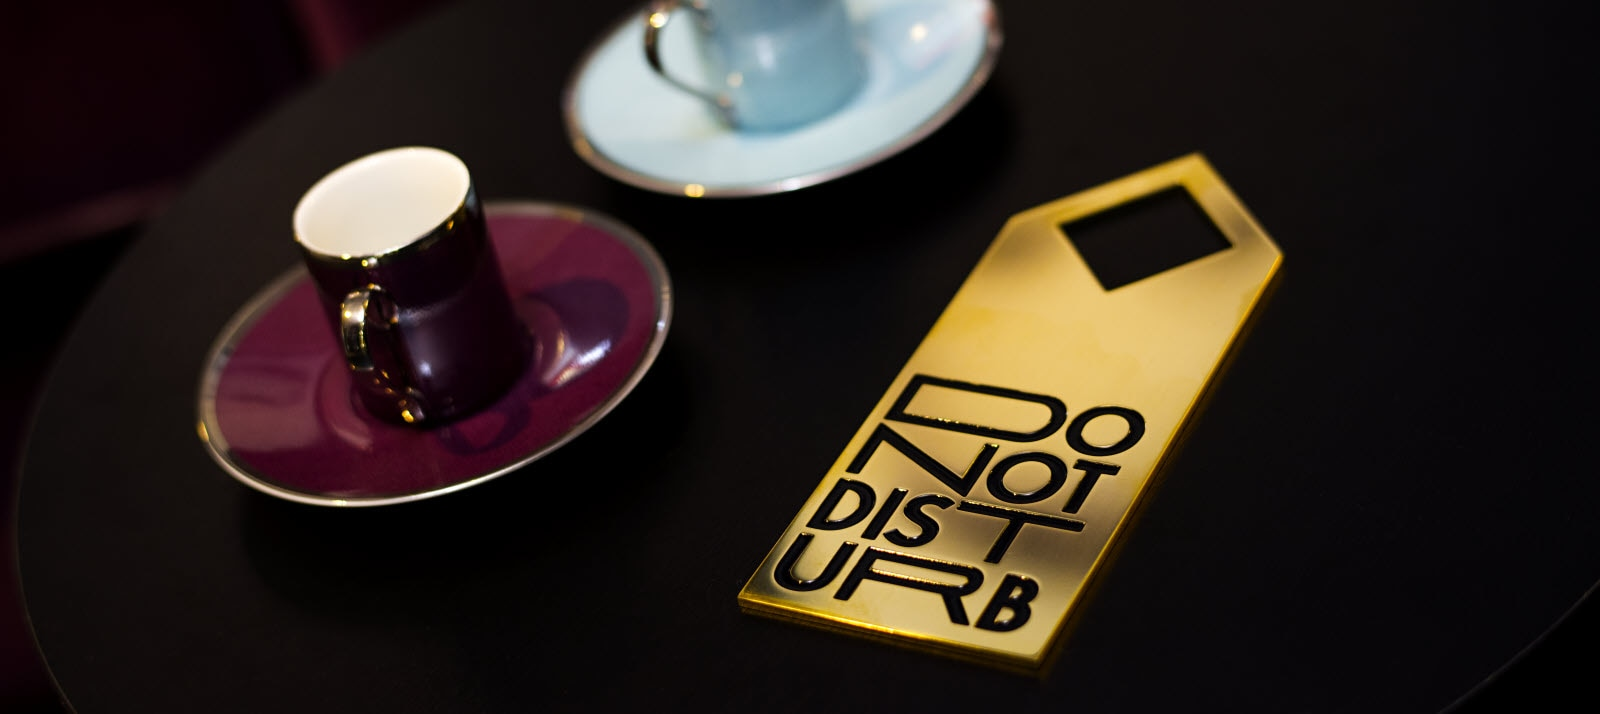 Do not disturb sign in gold and black